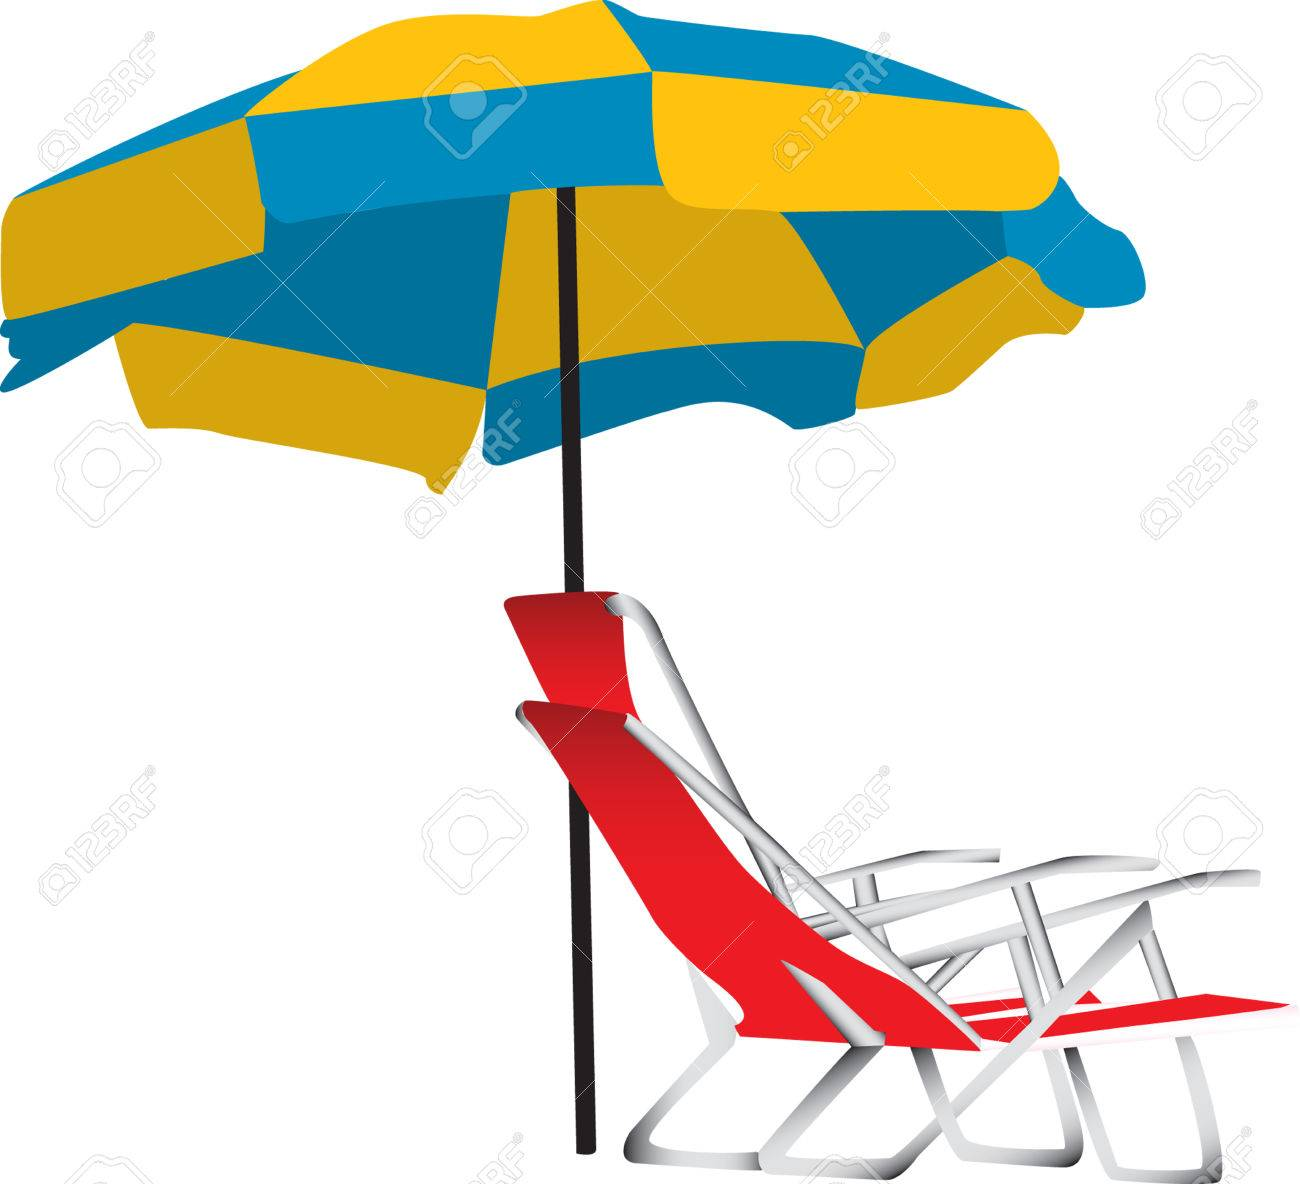 Beach lounge chair portable - Illustration Of A Blue And Yellow Beach Umbrella With A Portable Red Lounge Chair Underneath